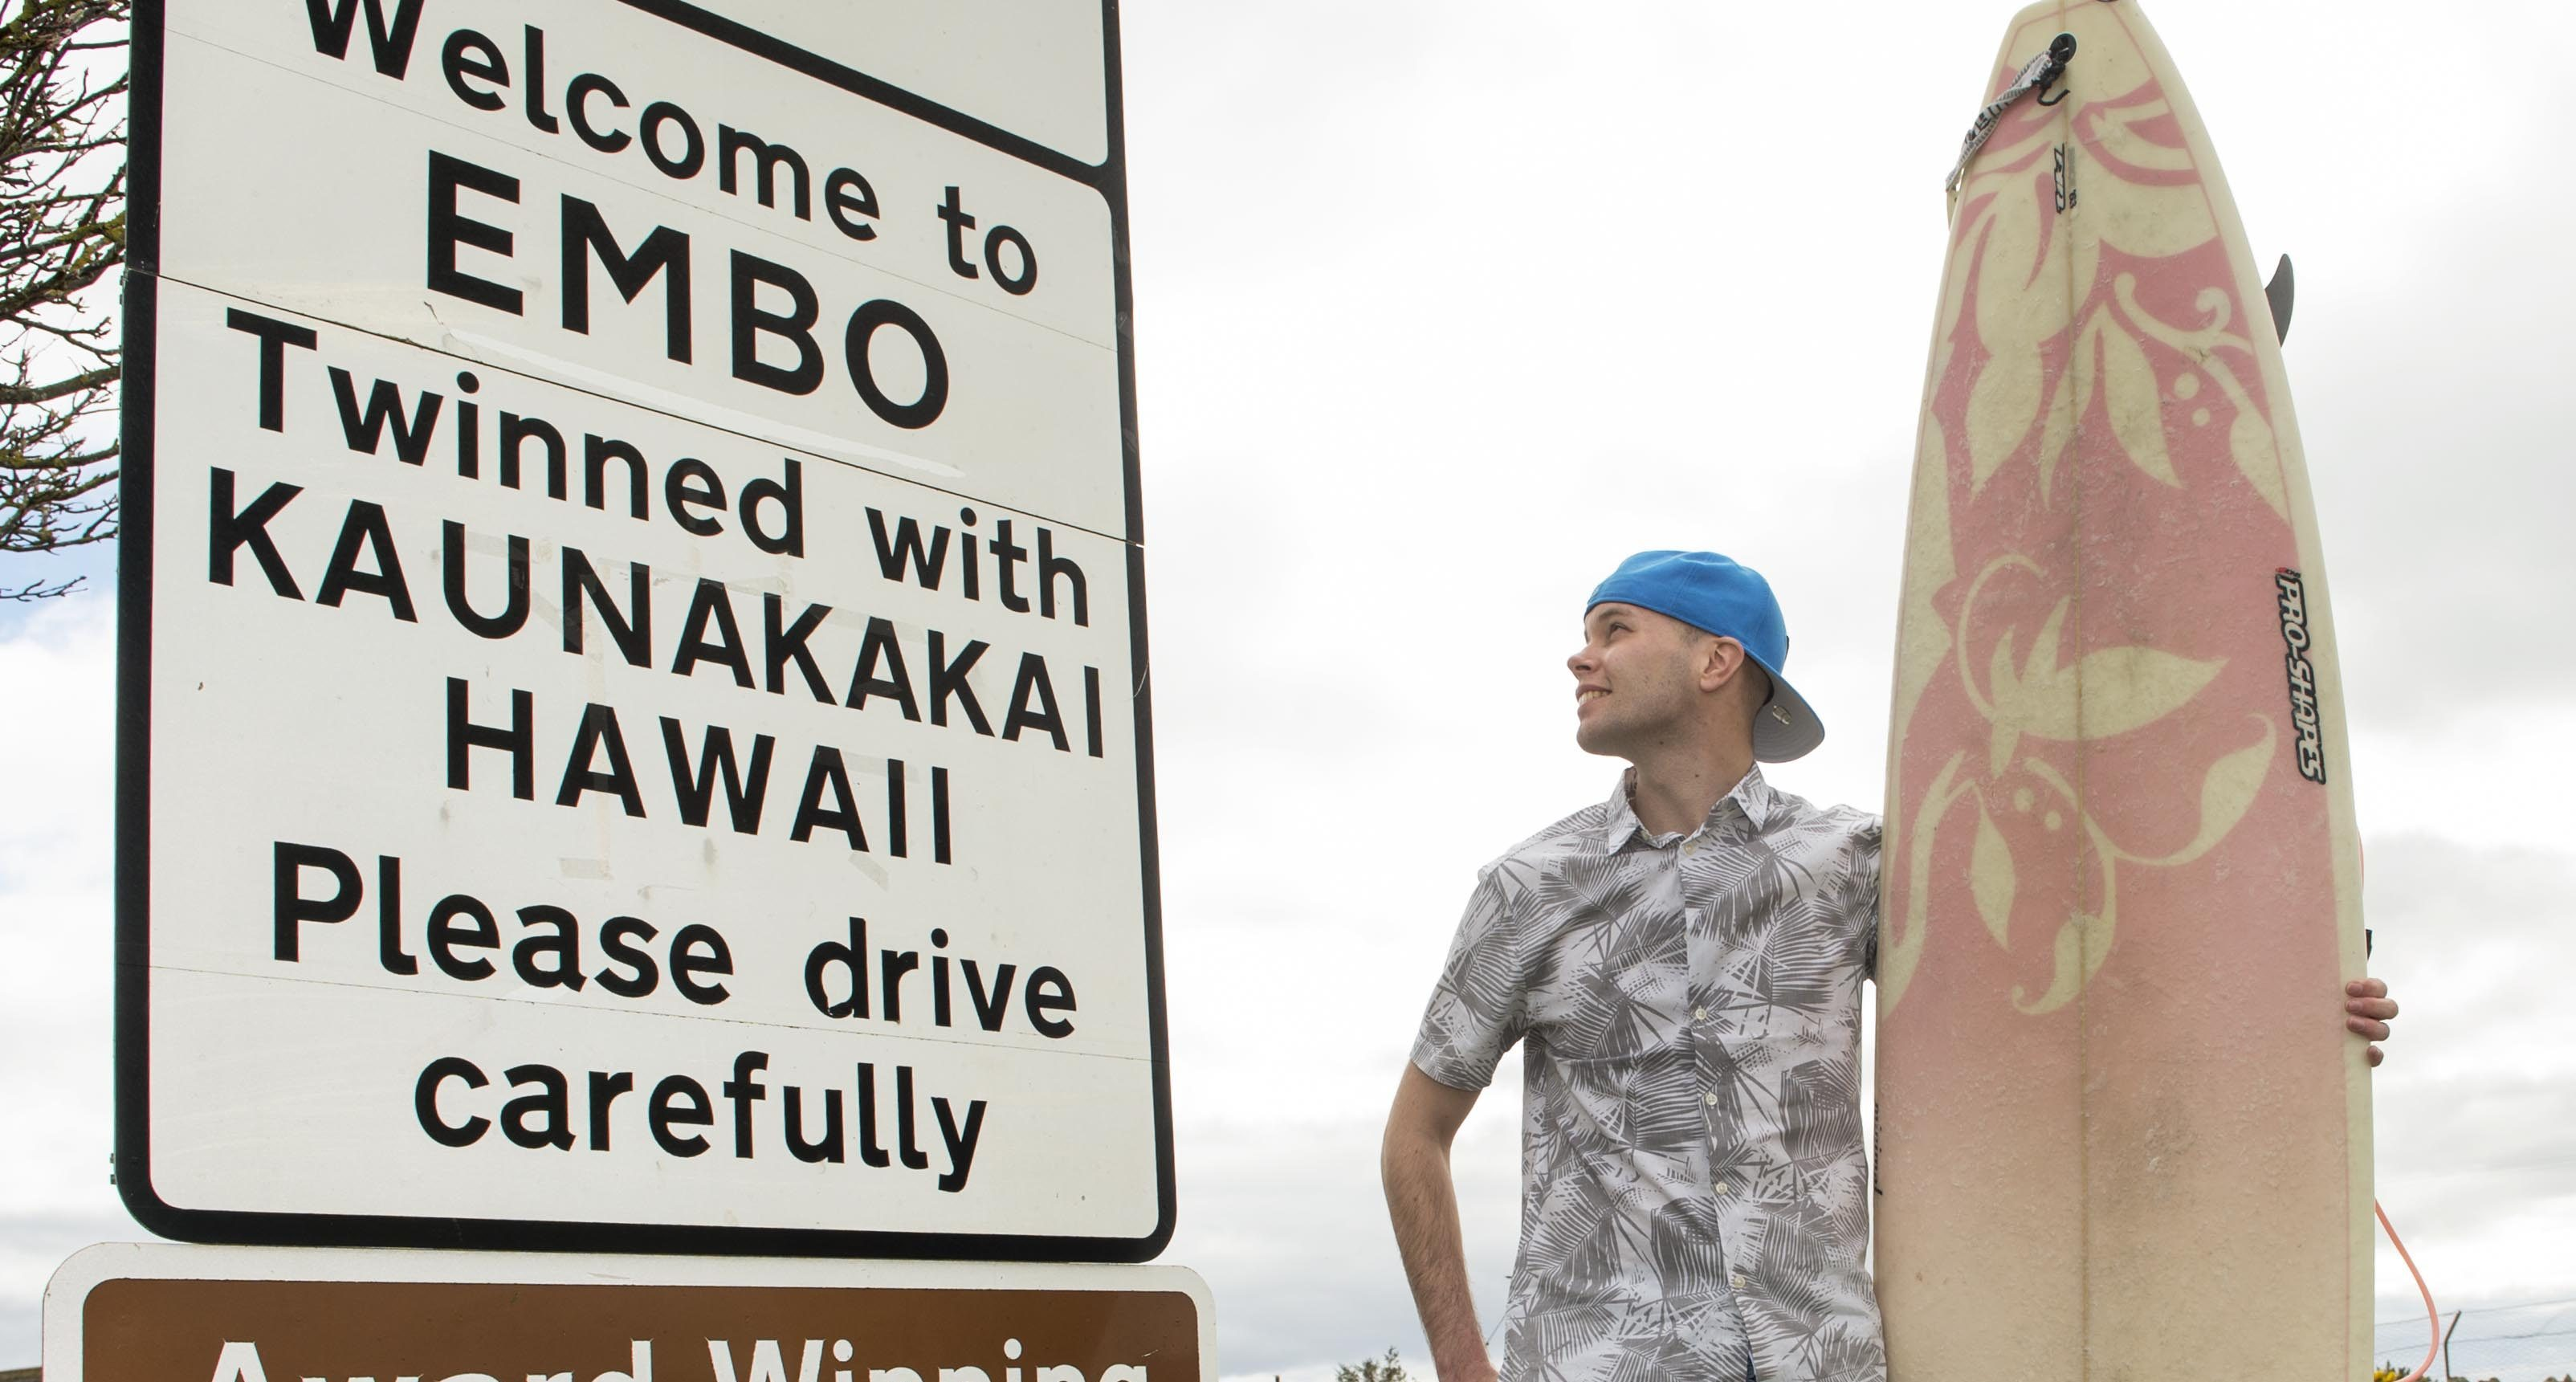 Our reporter Stuart Findlay brings a bit of Hawaii to Embo (Trevor Martin Photography)